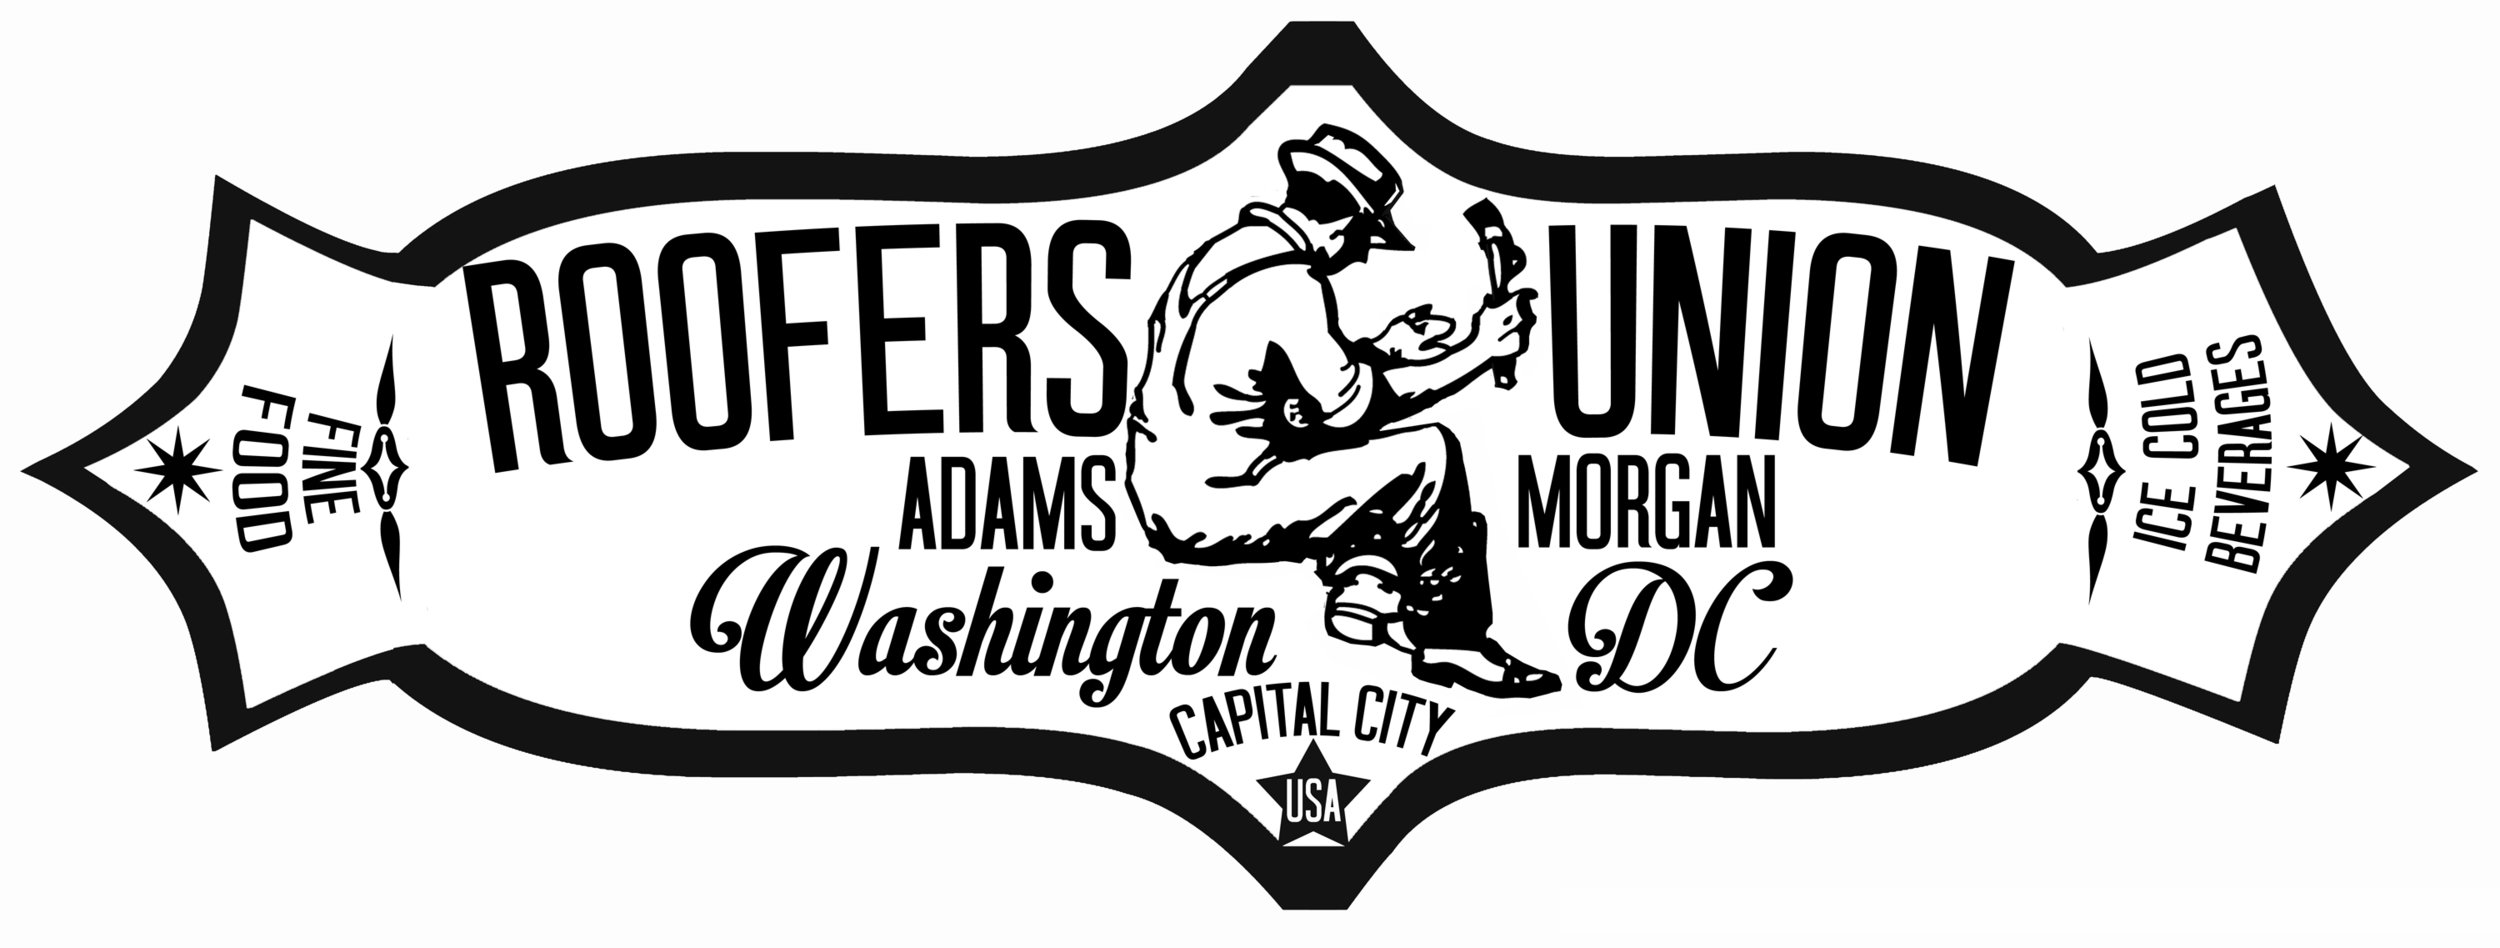 Roofers Union_Logo.jpg